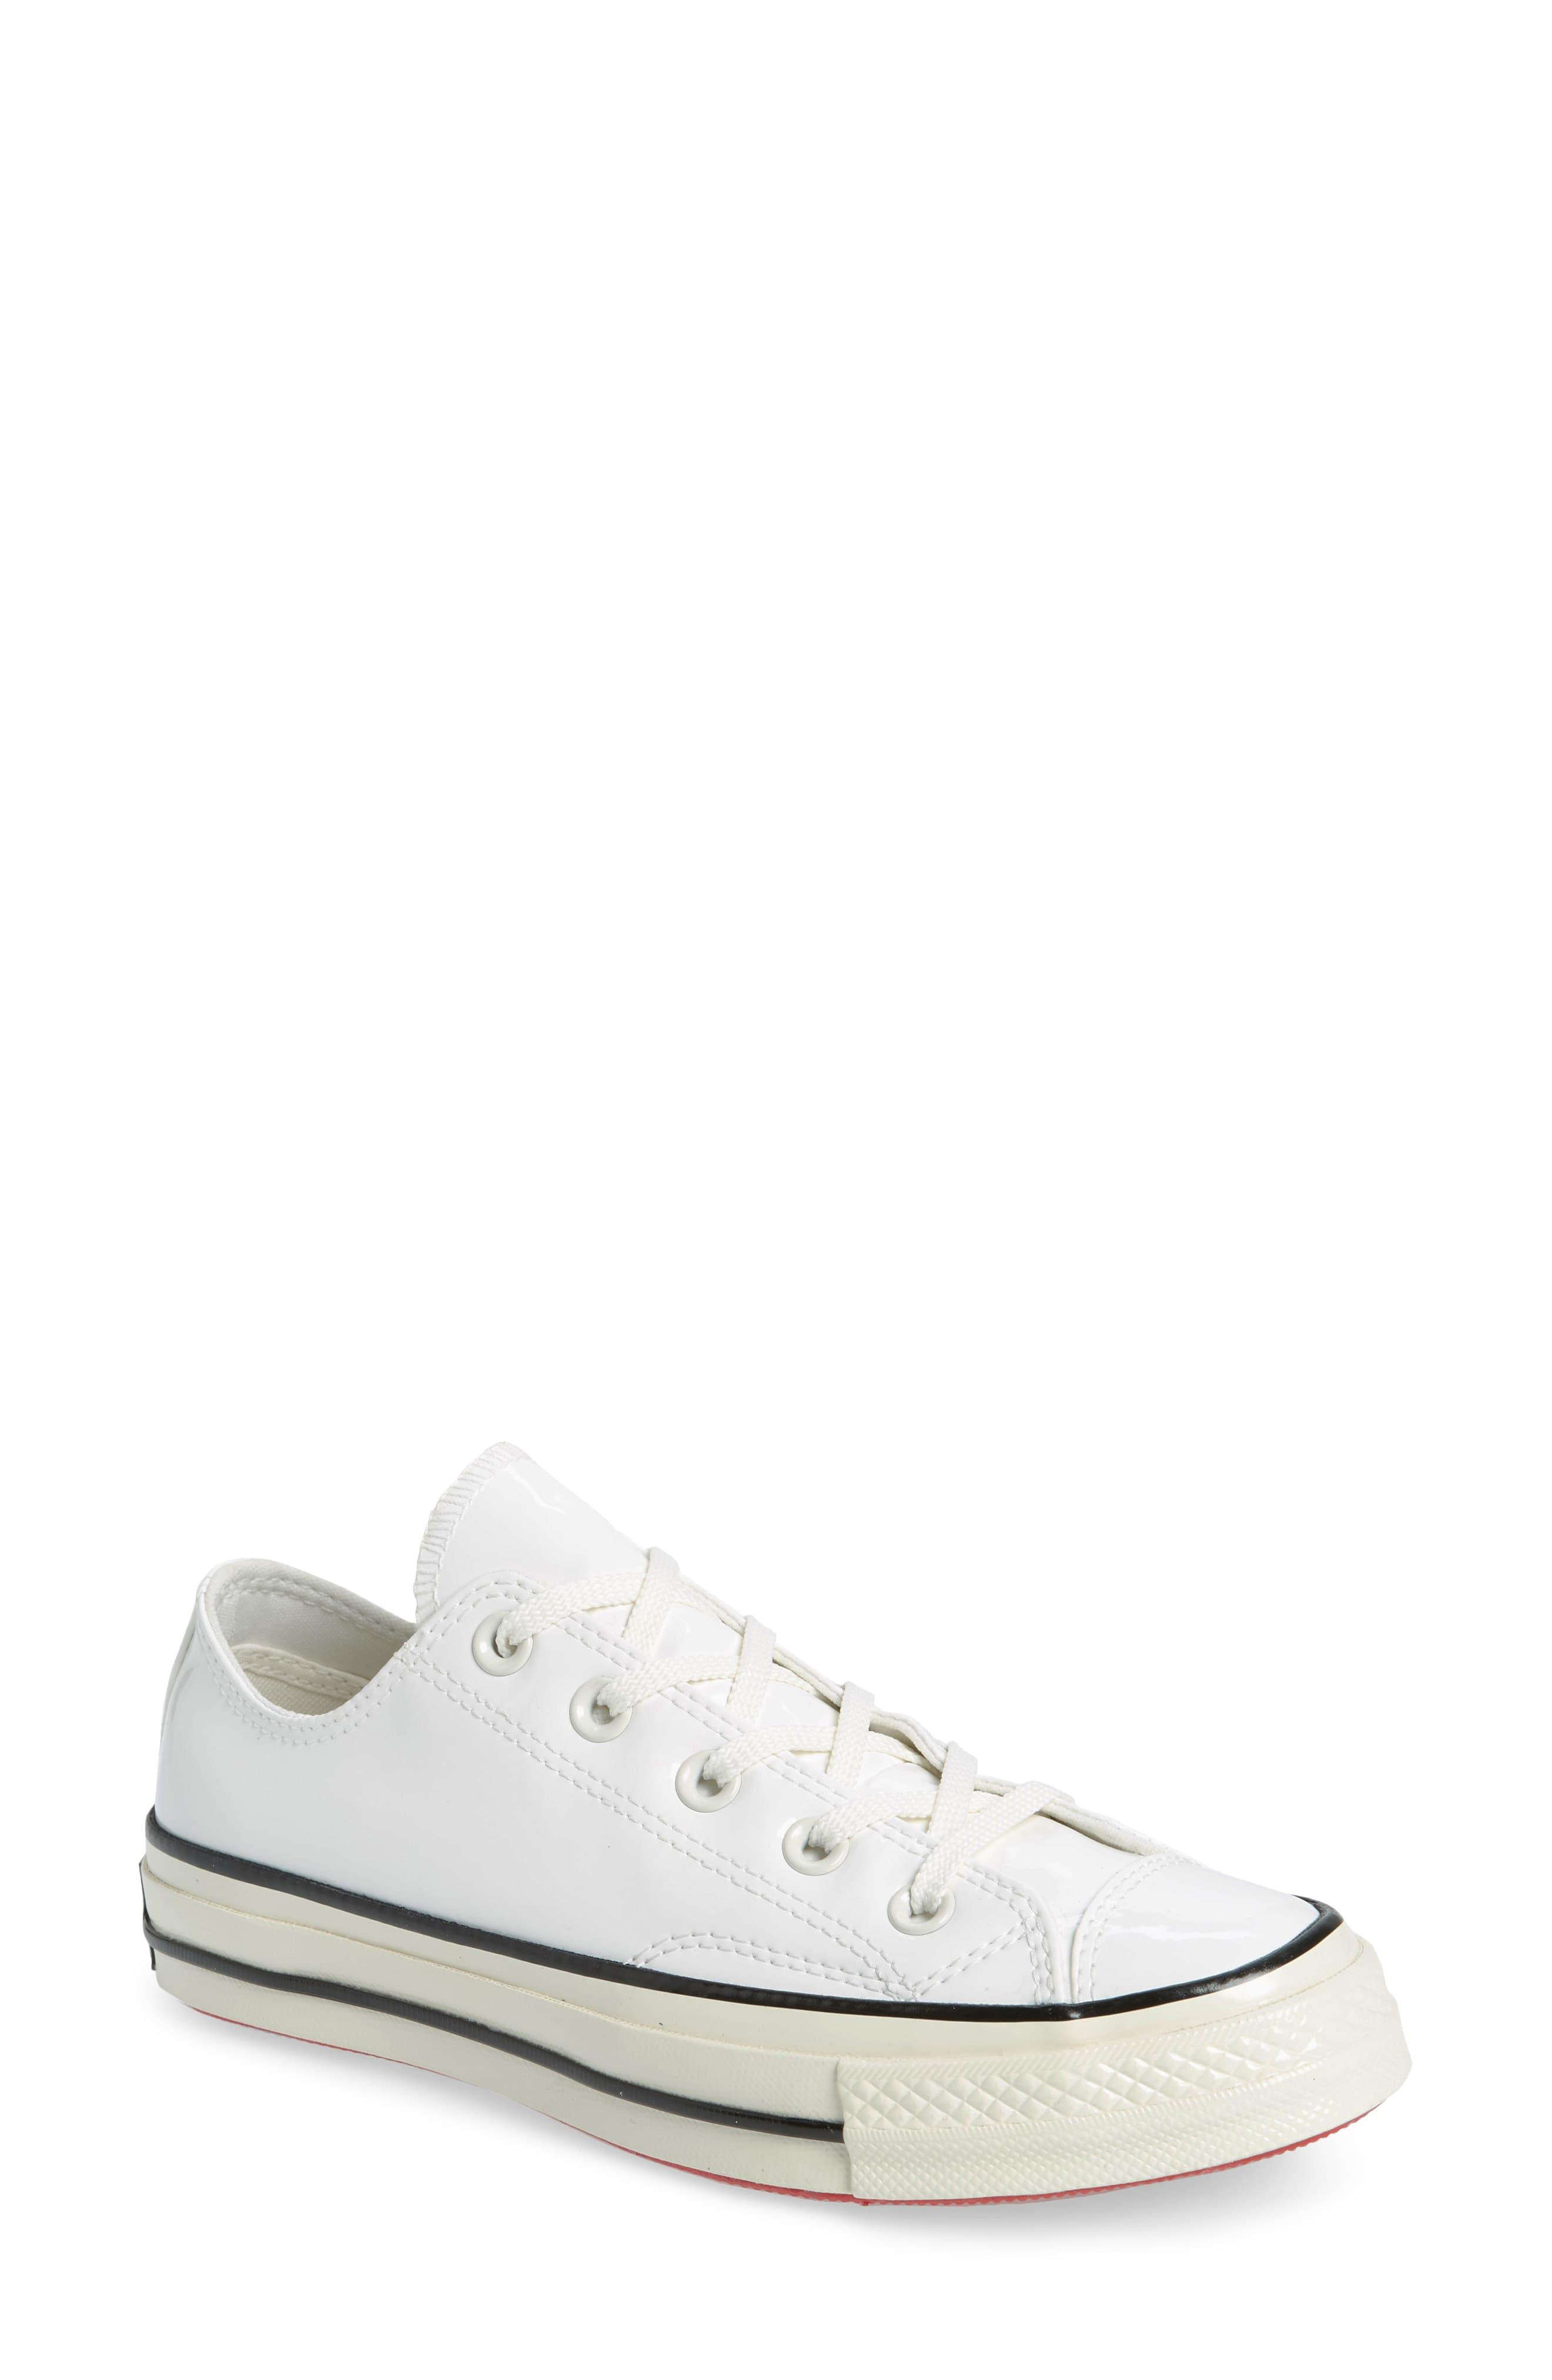 8a532c5d4071c Converse Chuck Taylor All Star 70 Patent Low Top Sneaker in White ...